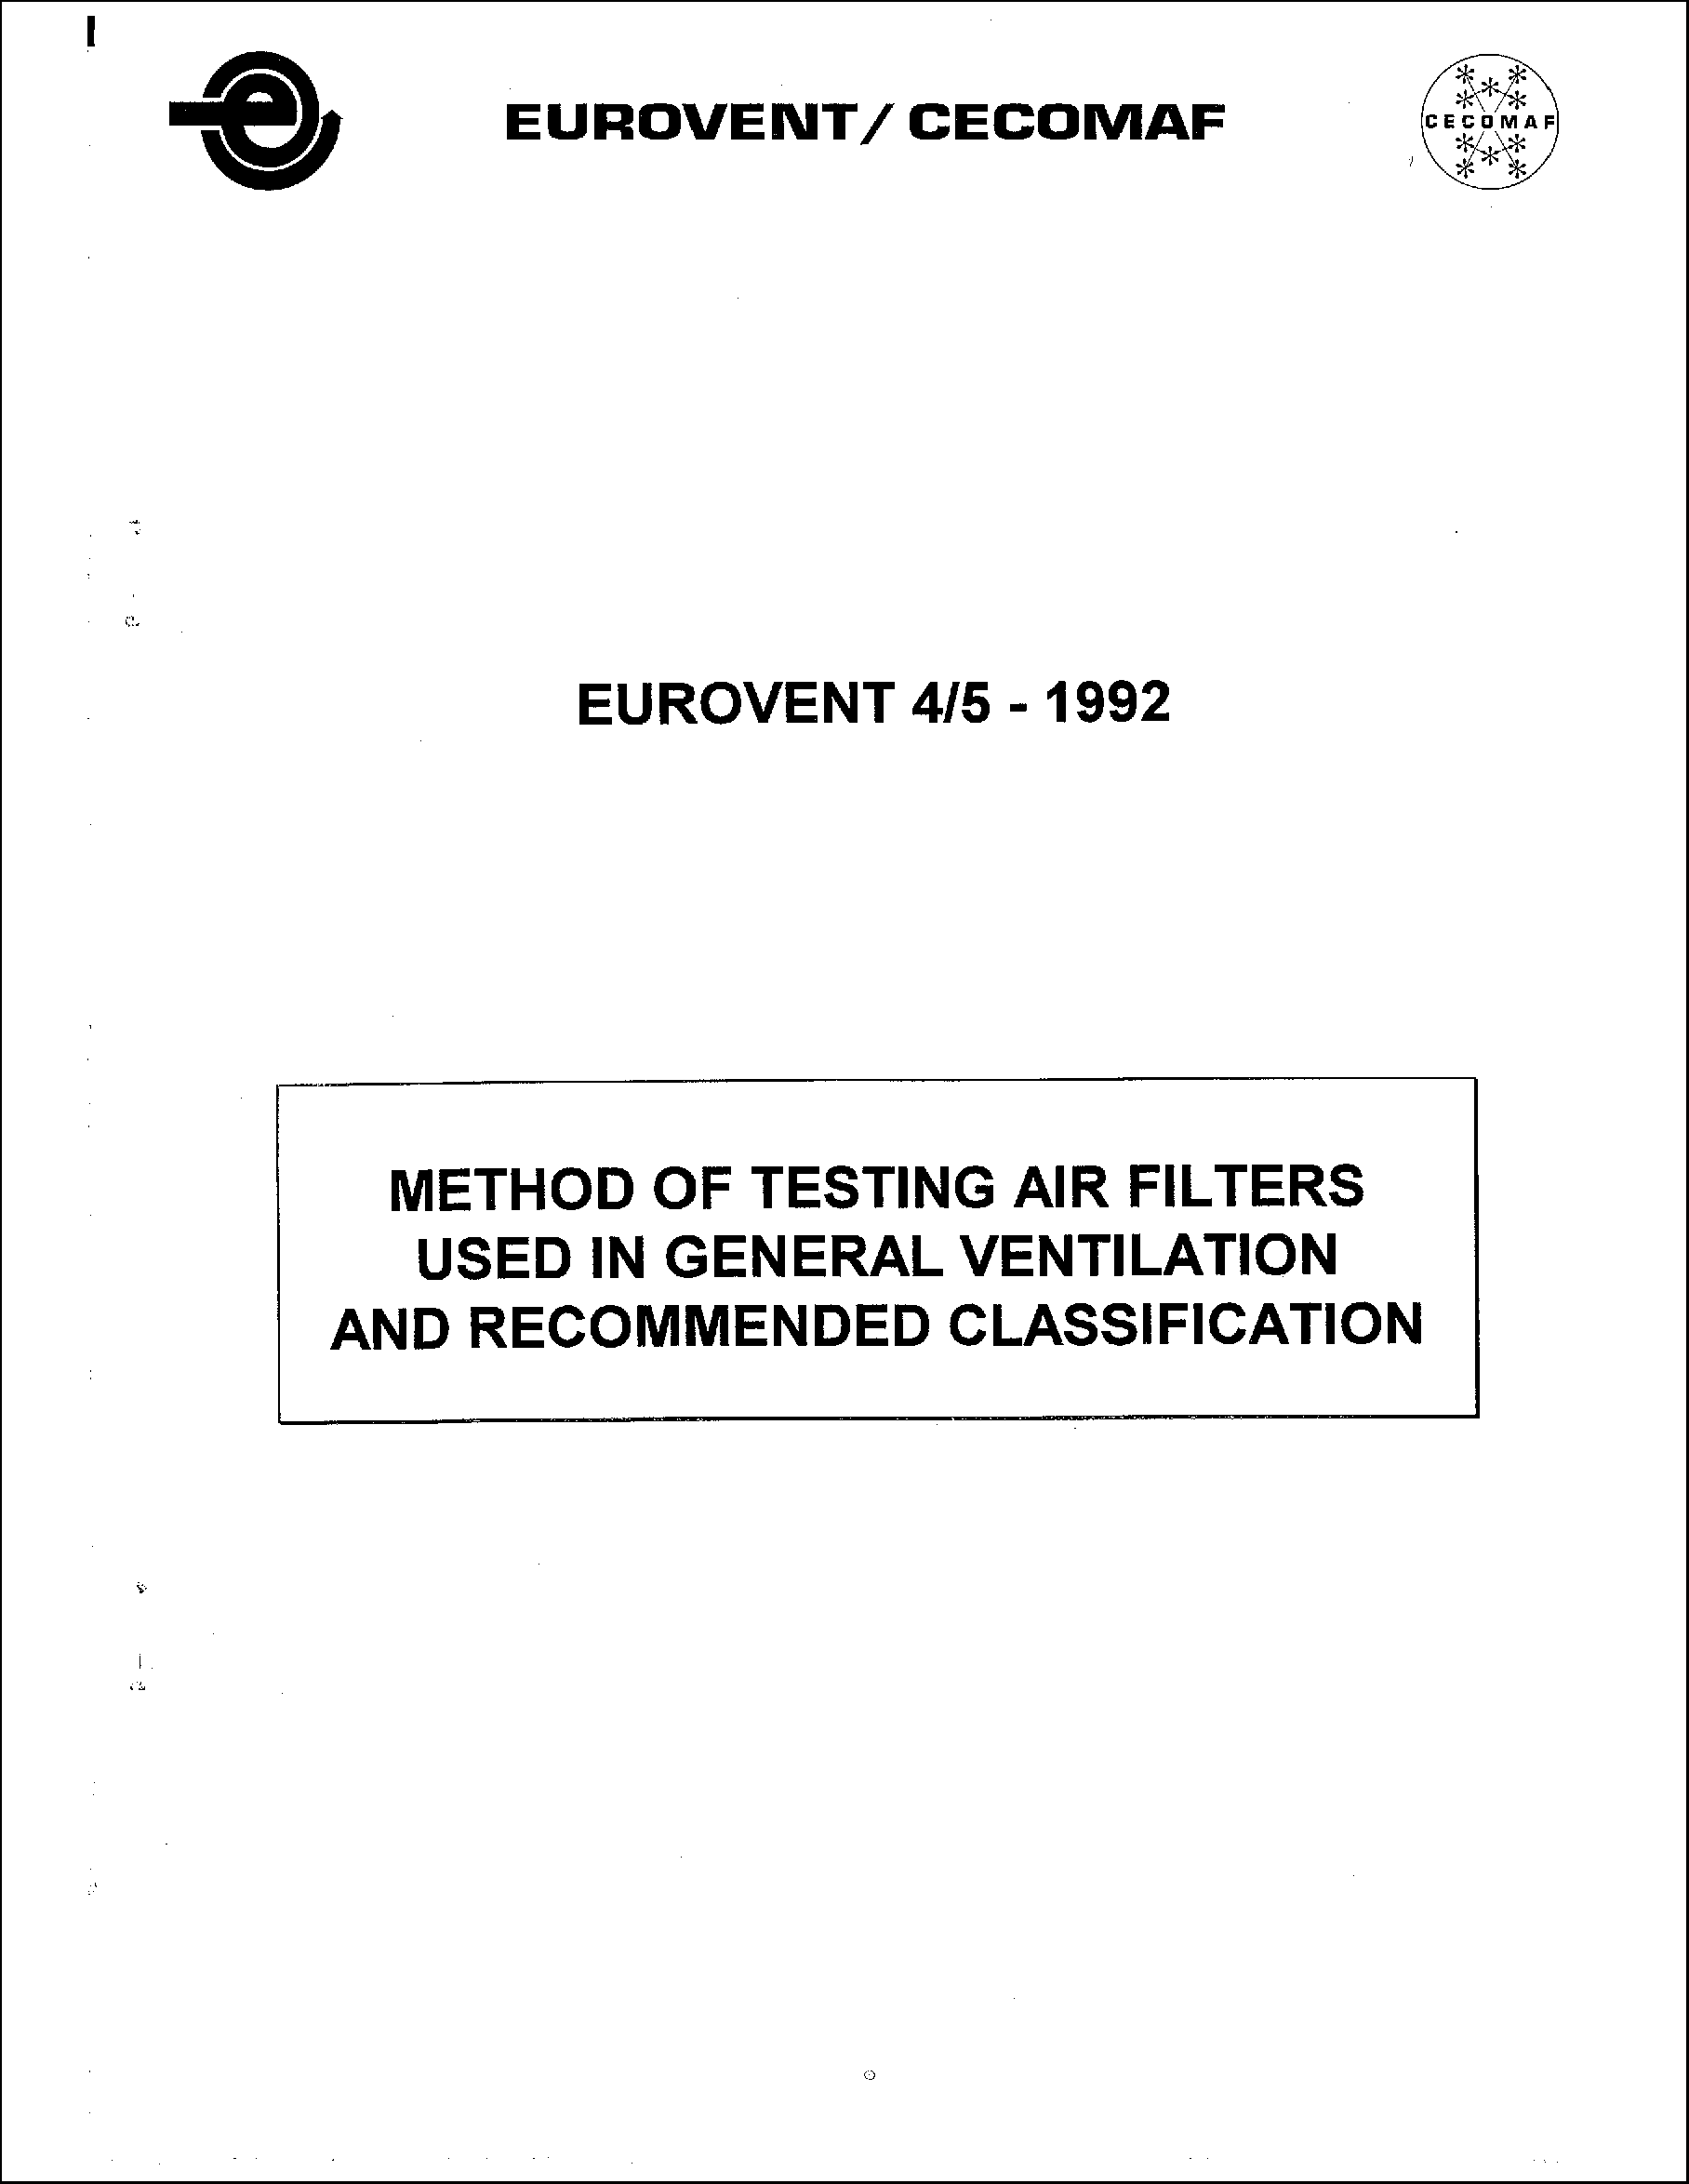 1992 - Method of testing air filters used in general ventilation and recommended classification